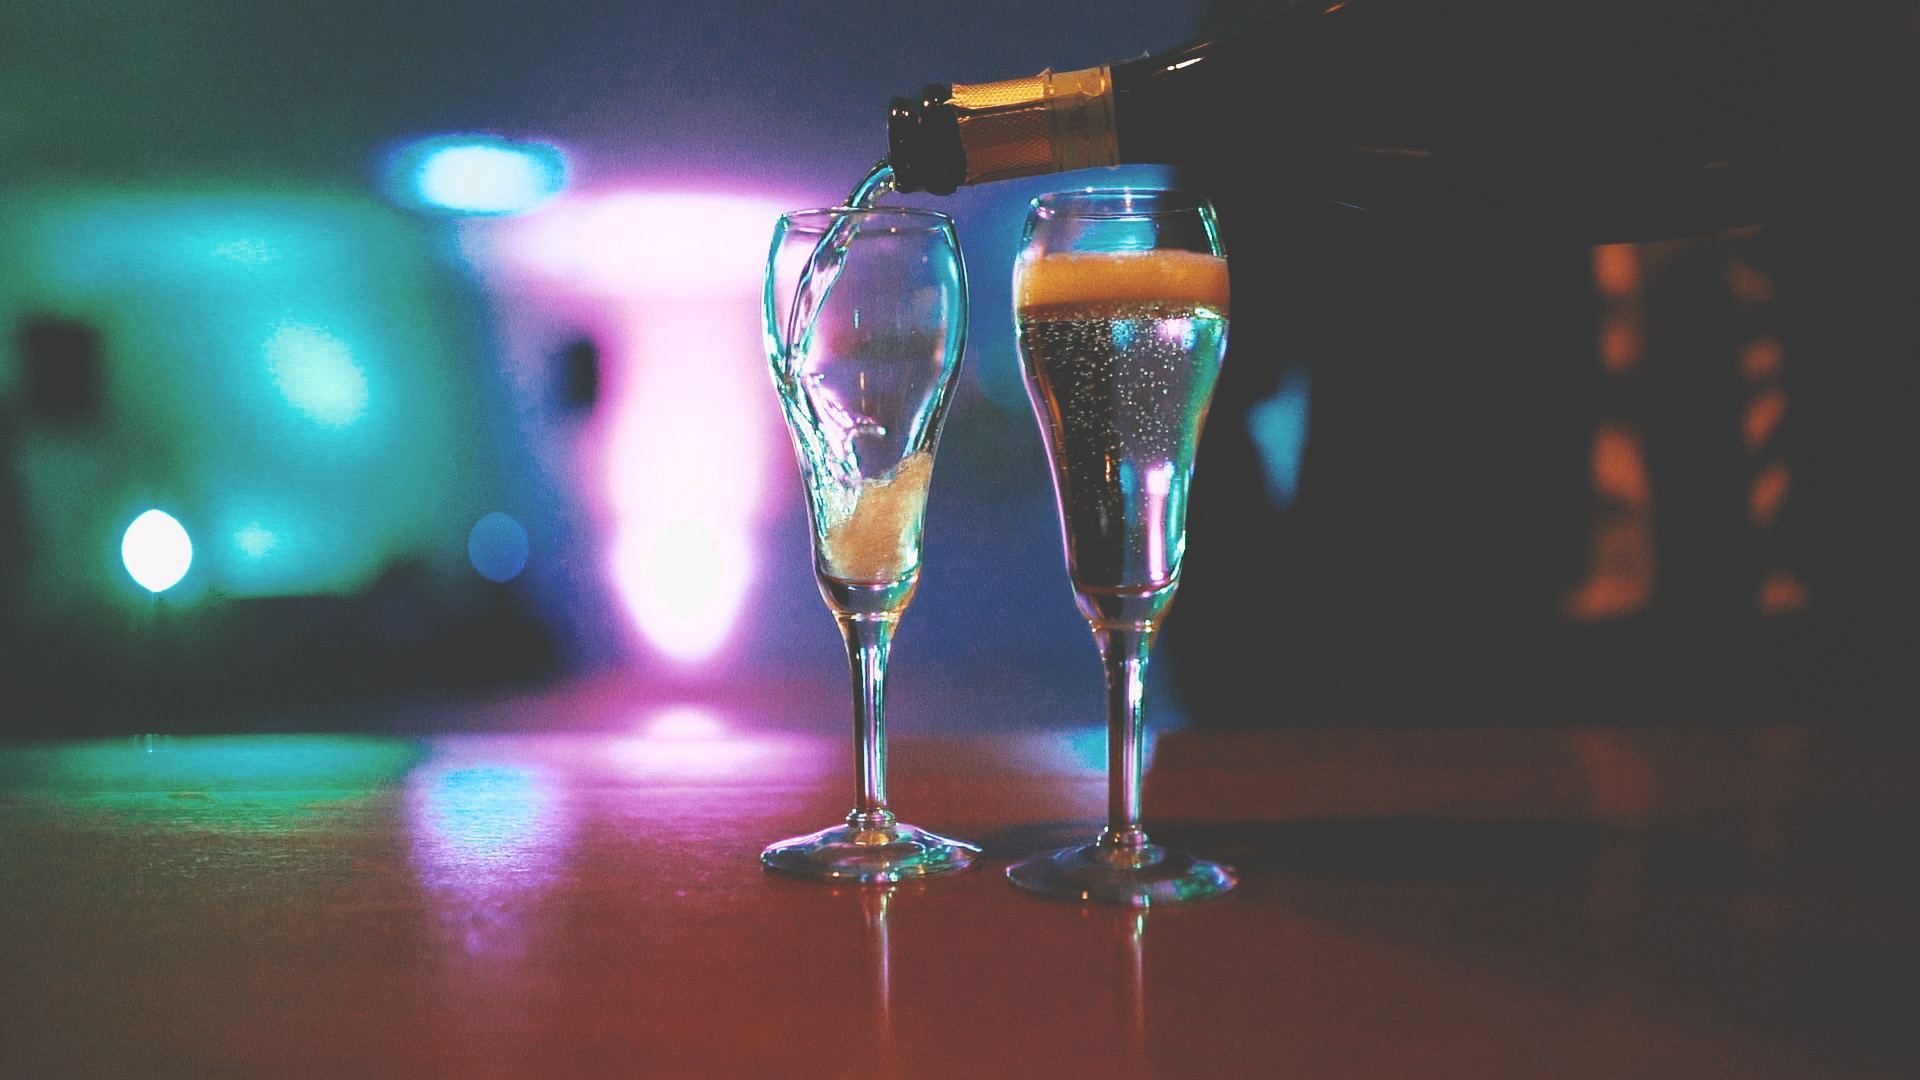 Two champagne glasses being filled with up-lit background